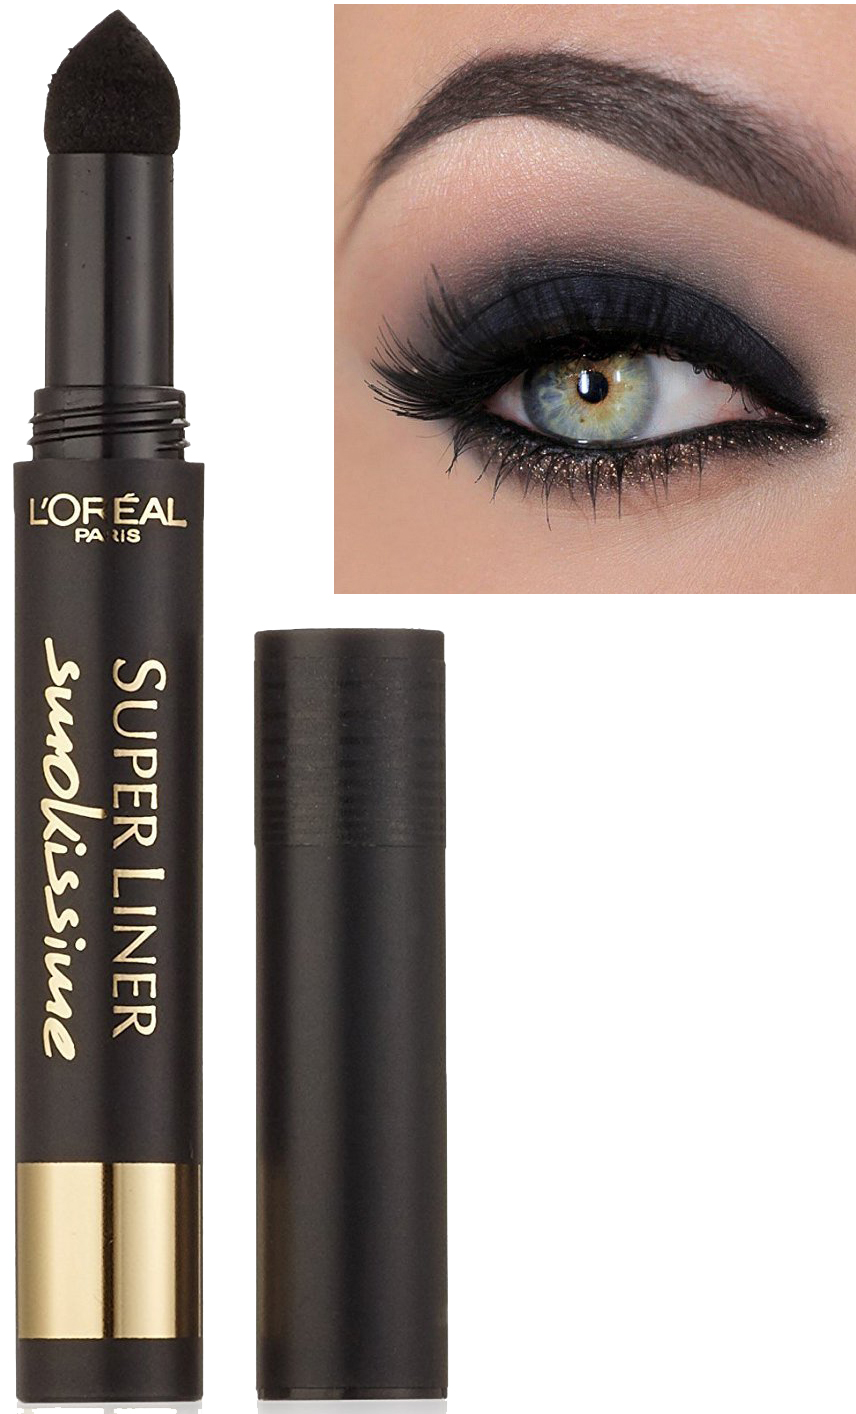 L'Oreal Super Liner Smokissime Powder Eyeliner Pen - Black Smoke